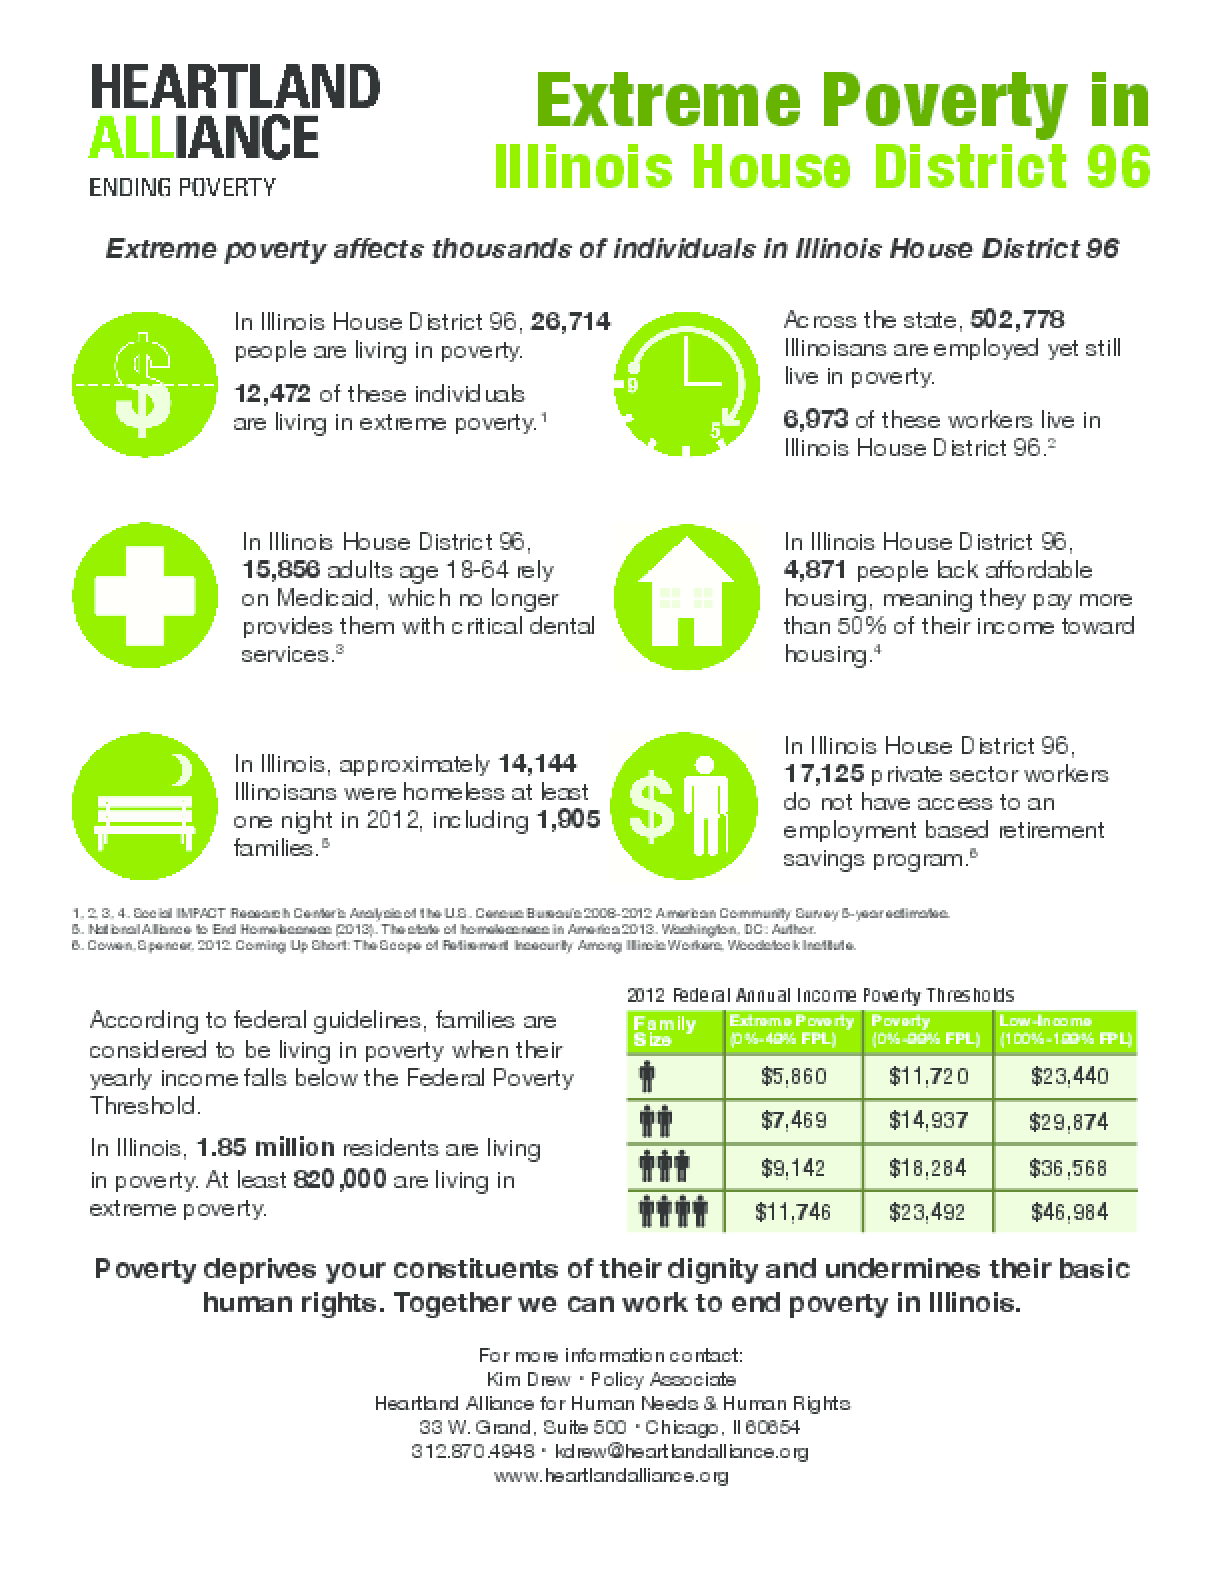 Poverty Fact Sheets for Illinois House District 96